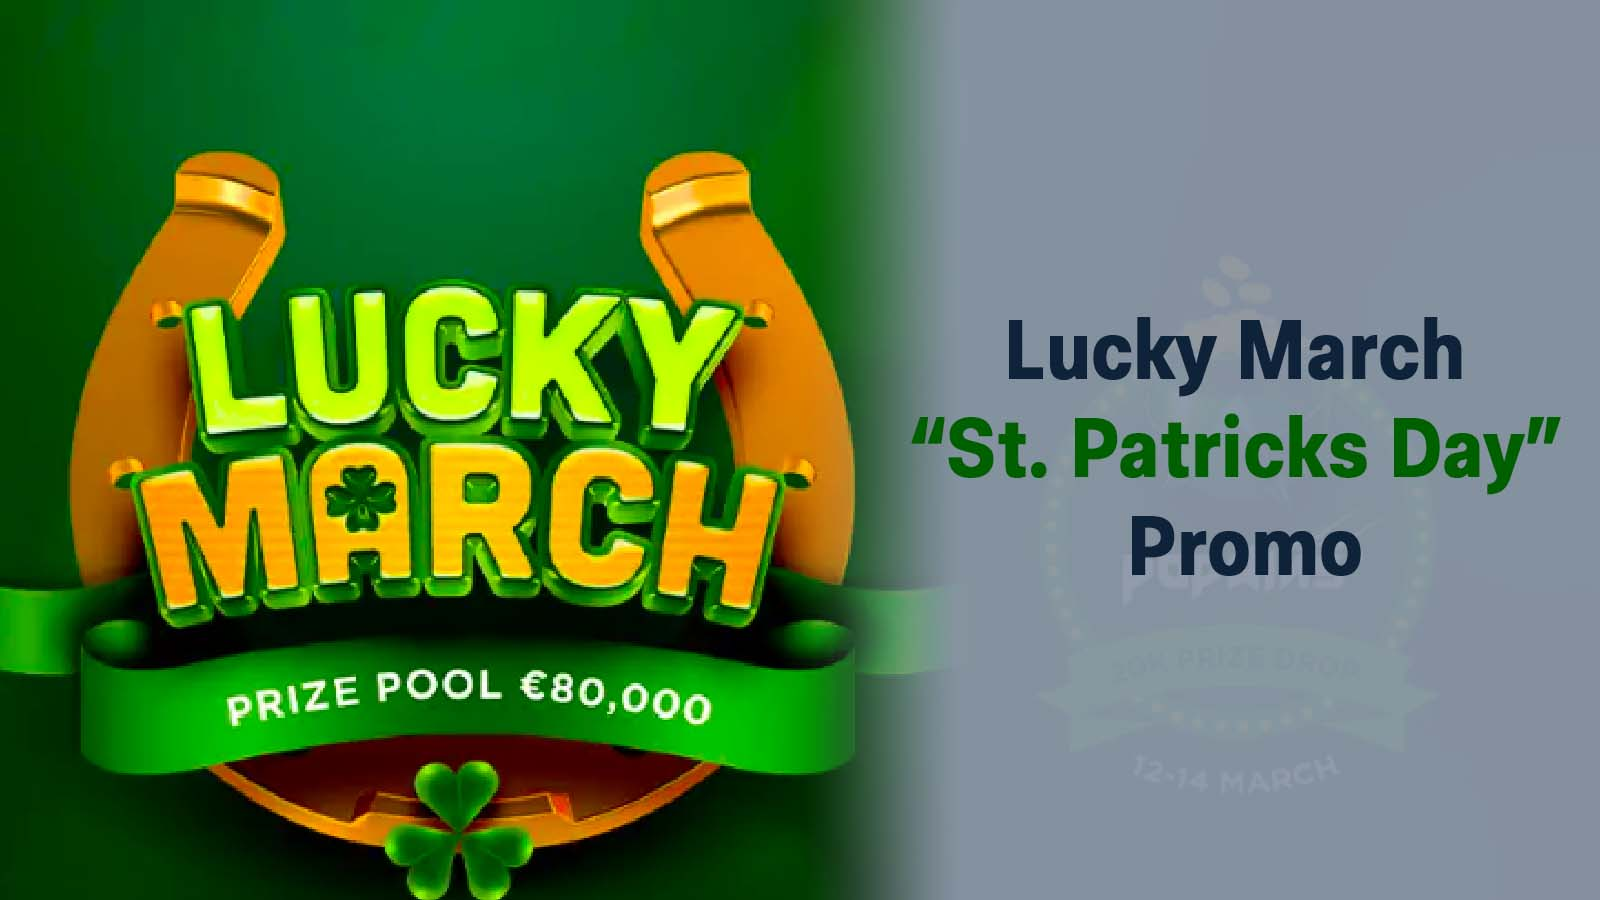 cSt Patricks Day Promo - Lucky March